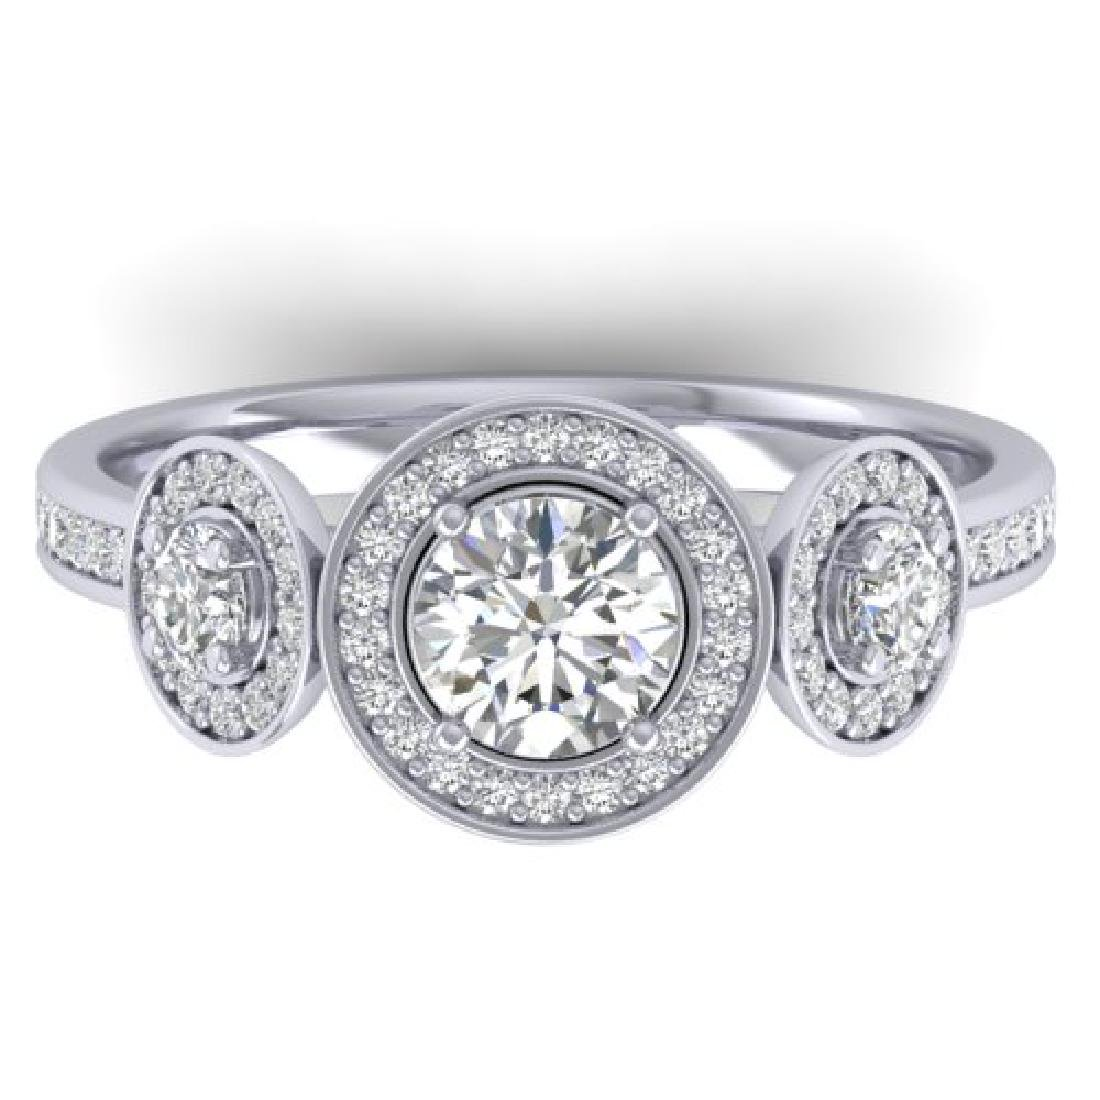 1.25 CTW Certified VS/SI Diamond Art Deco 3 Stone Micro